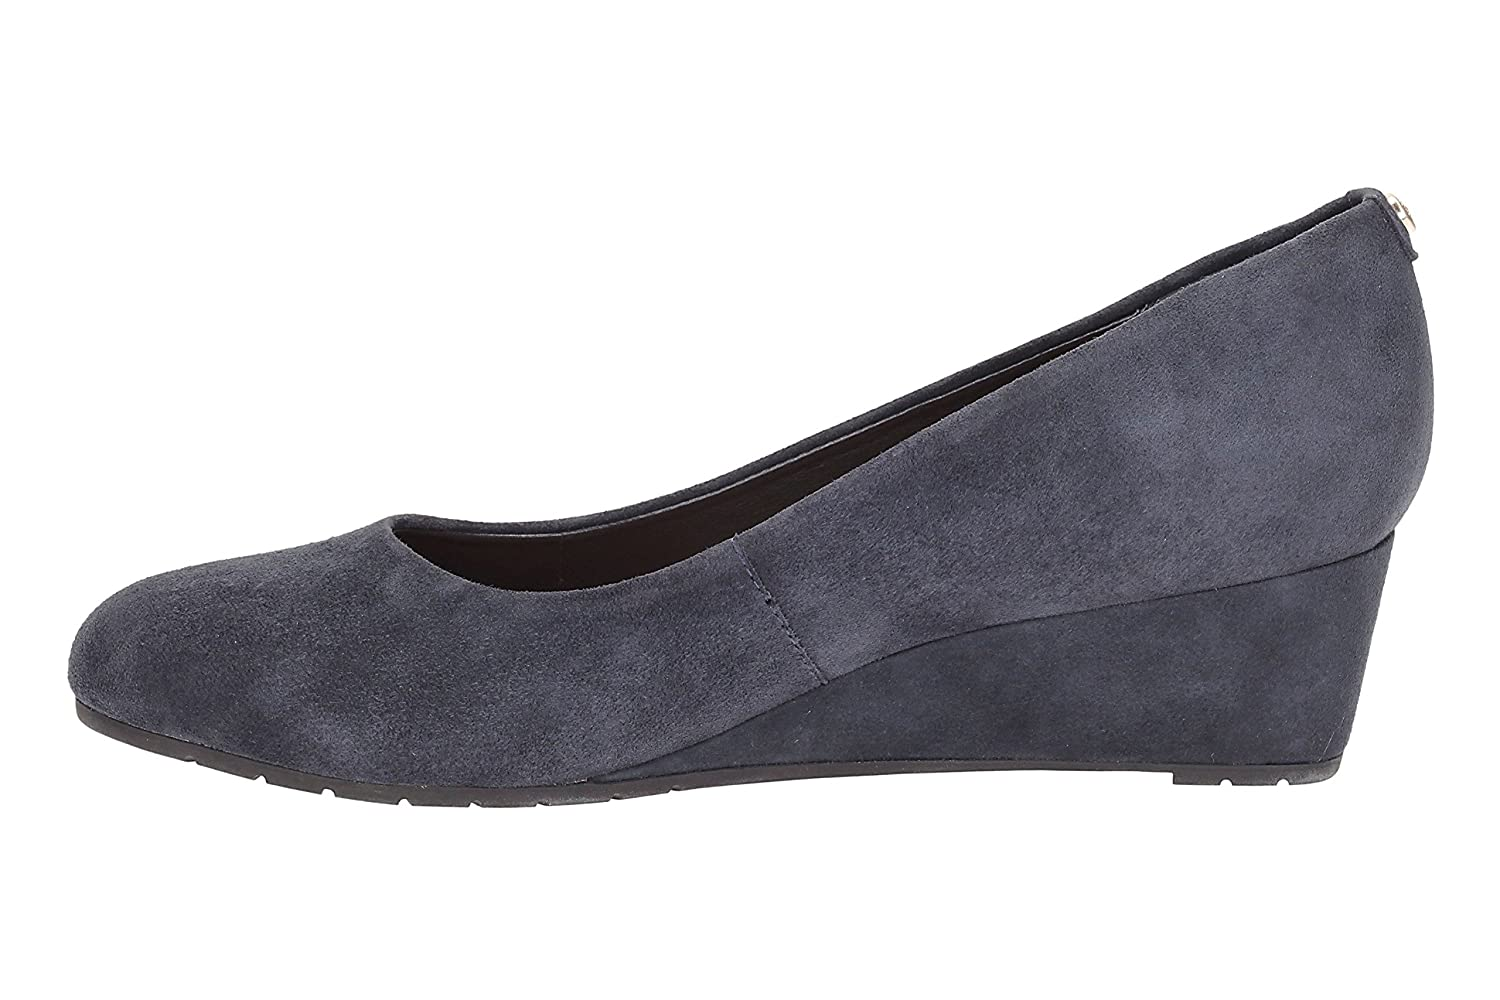 2e9721d87699 Clarks Women s Closed Toe Wedge Shoes Vendra Bloom Navy Suede   Amazon.co.uk  Shoes   Bags